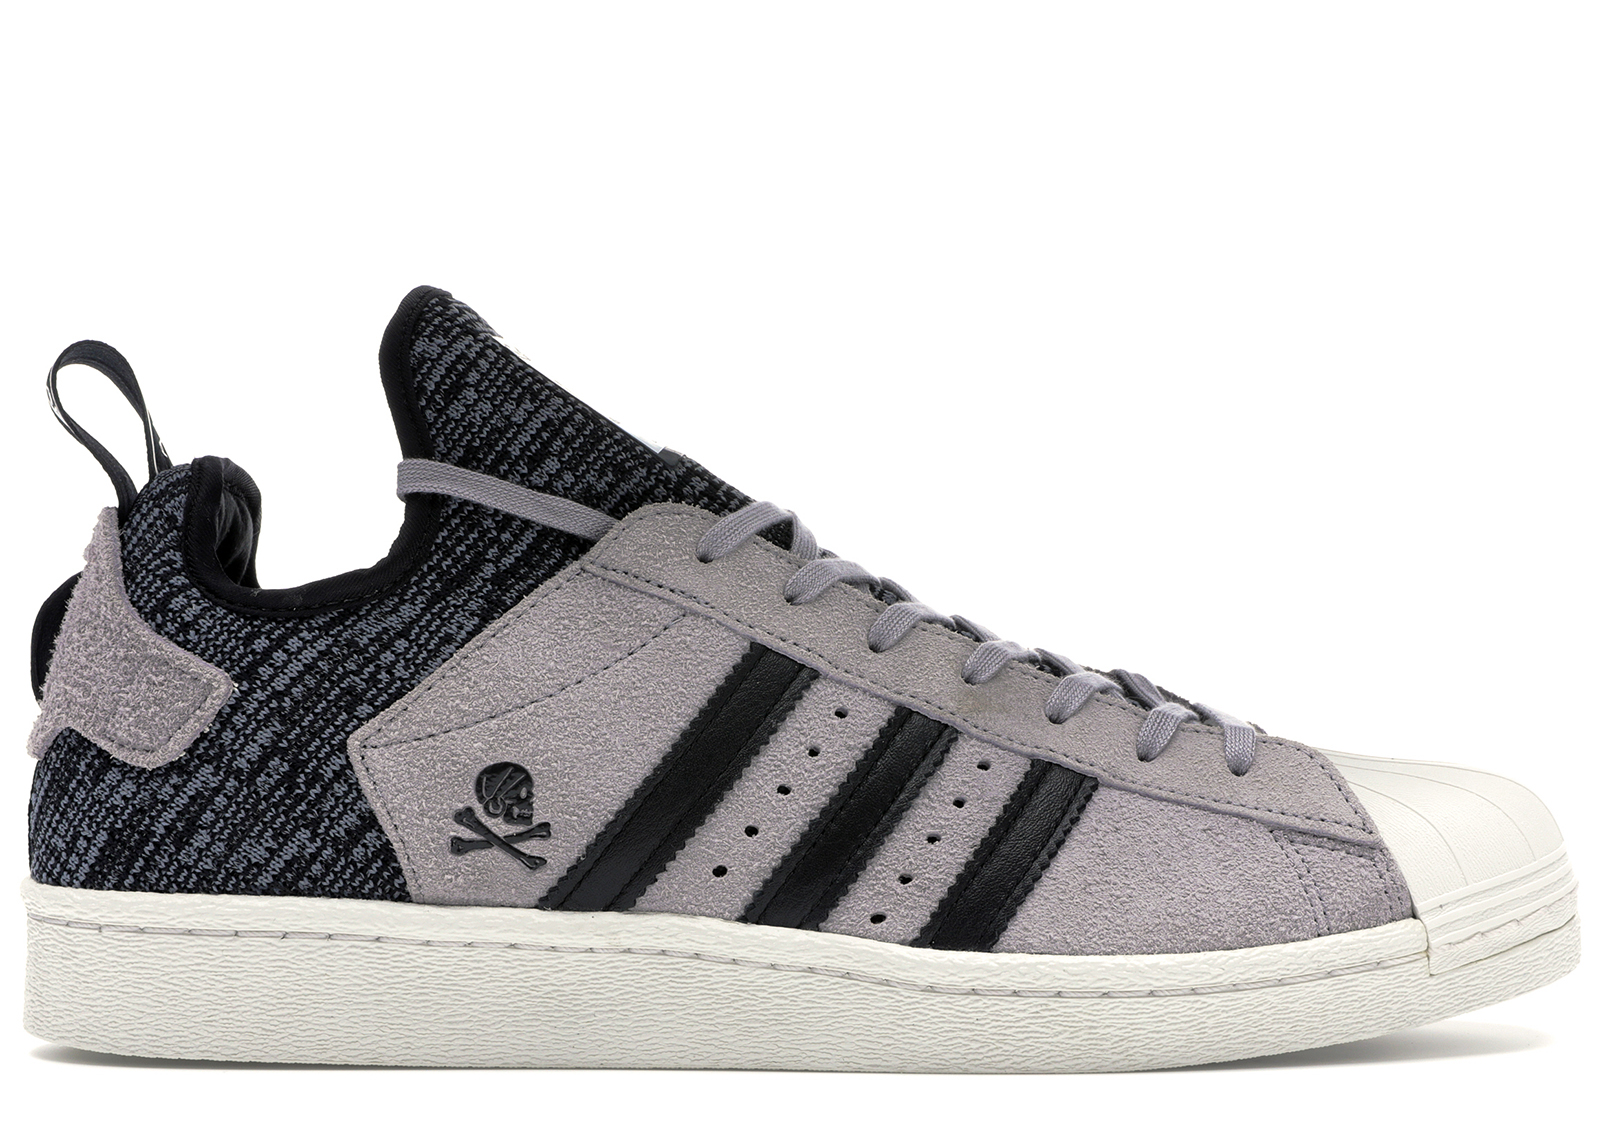 adidas Superstar X Boost Bape X Superstar Neighborhood CG2917 c61dfd